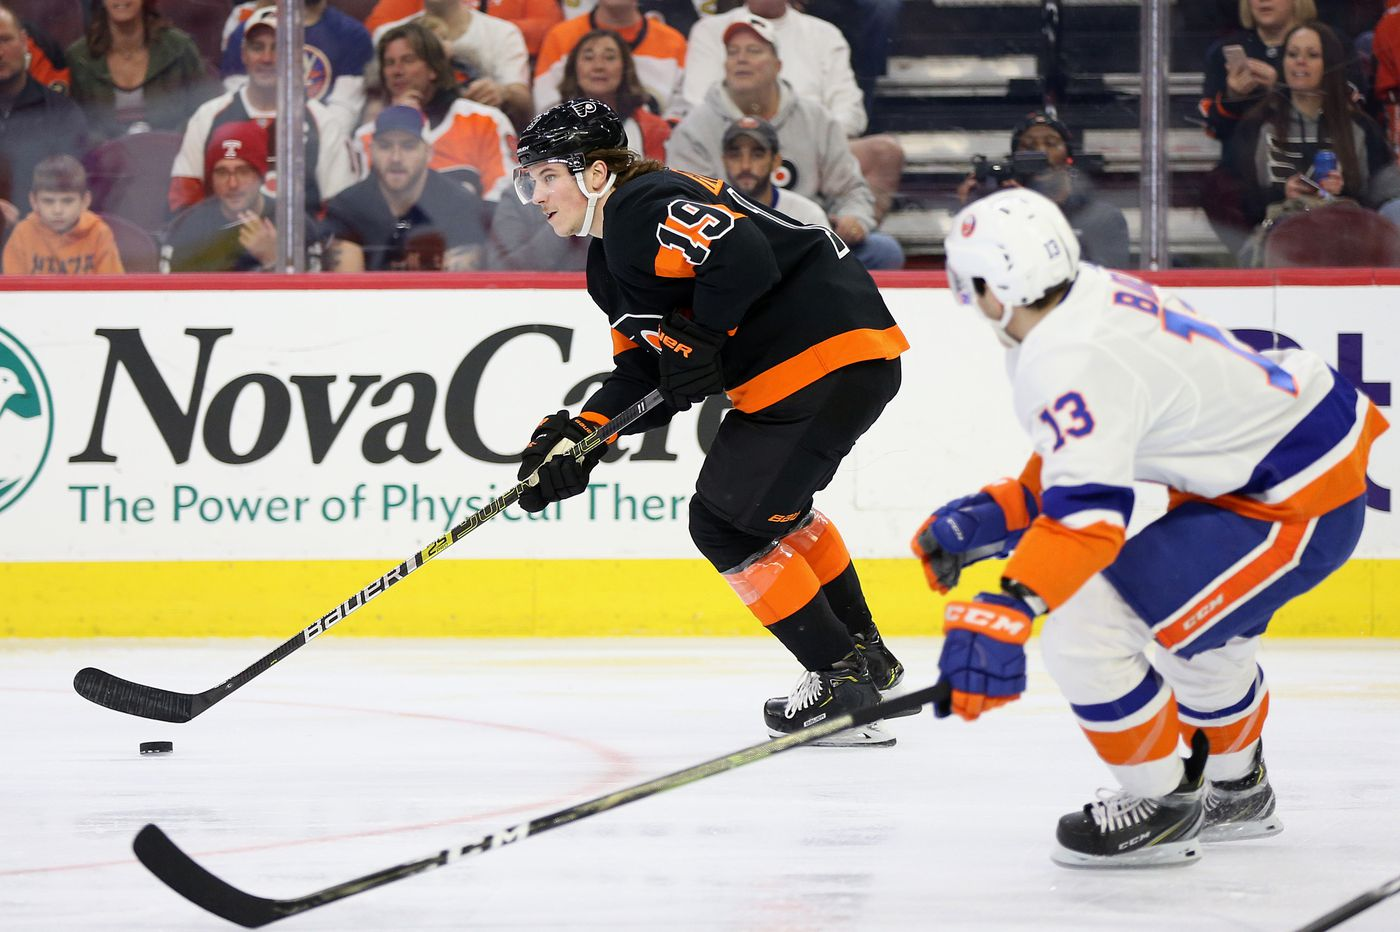 Nolan Patrick joins Flyers at practice, but Alain Vigneault downplays his appearance